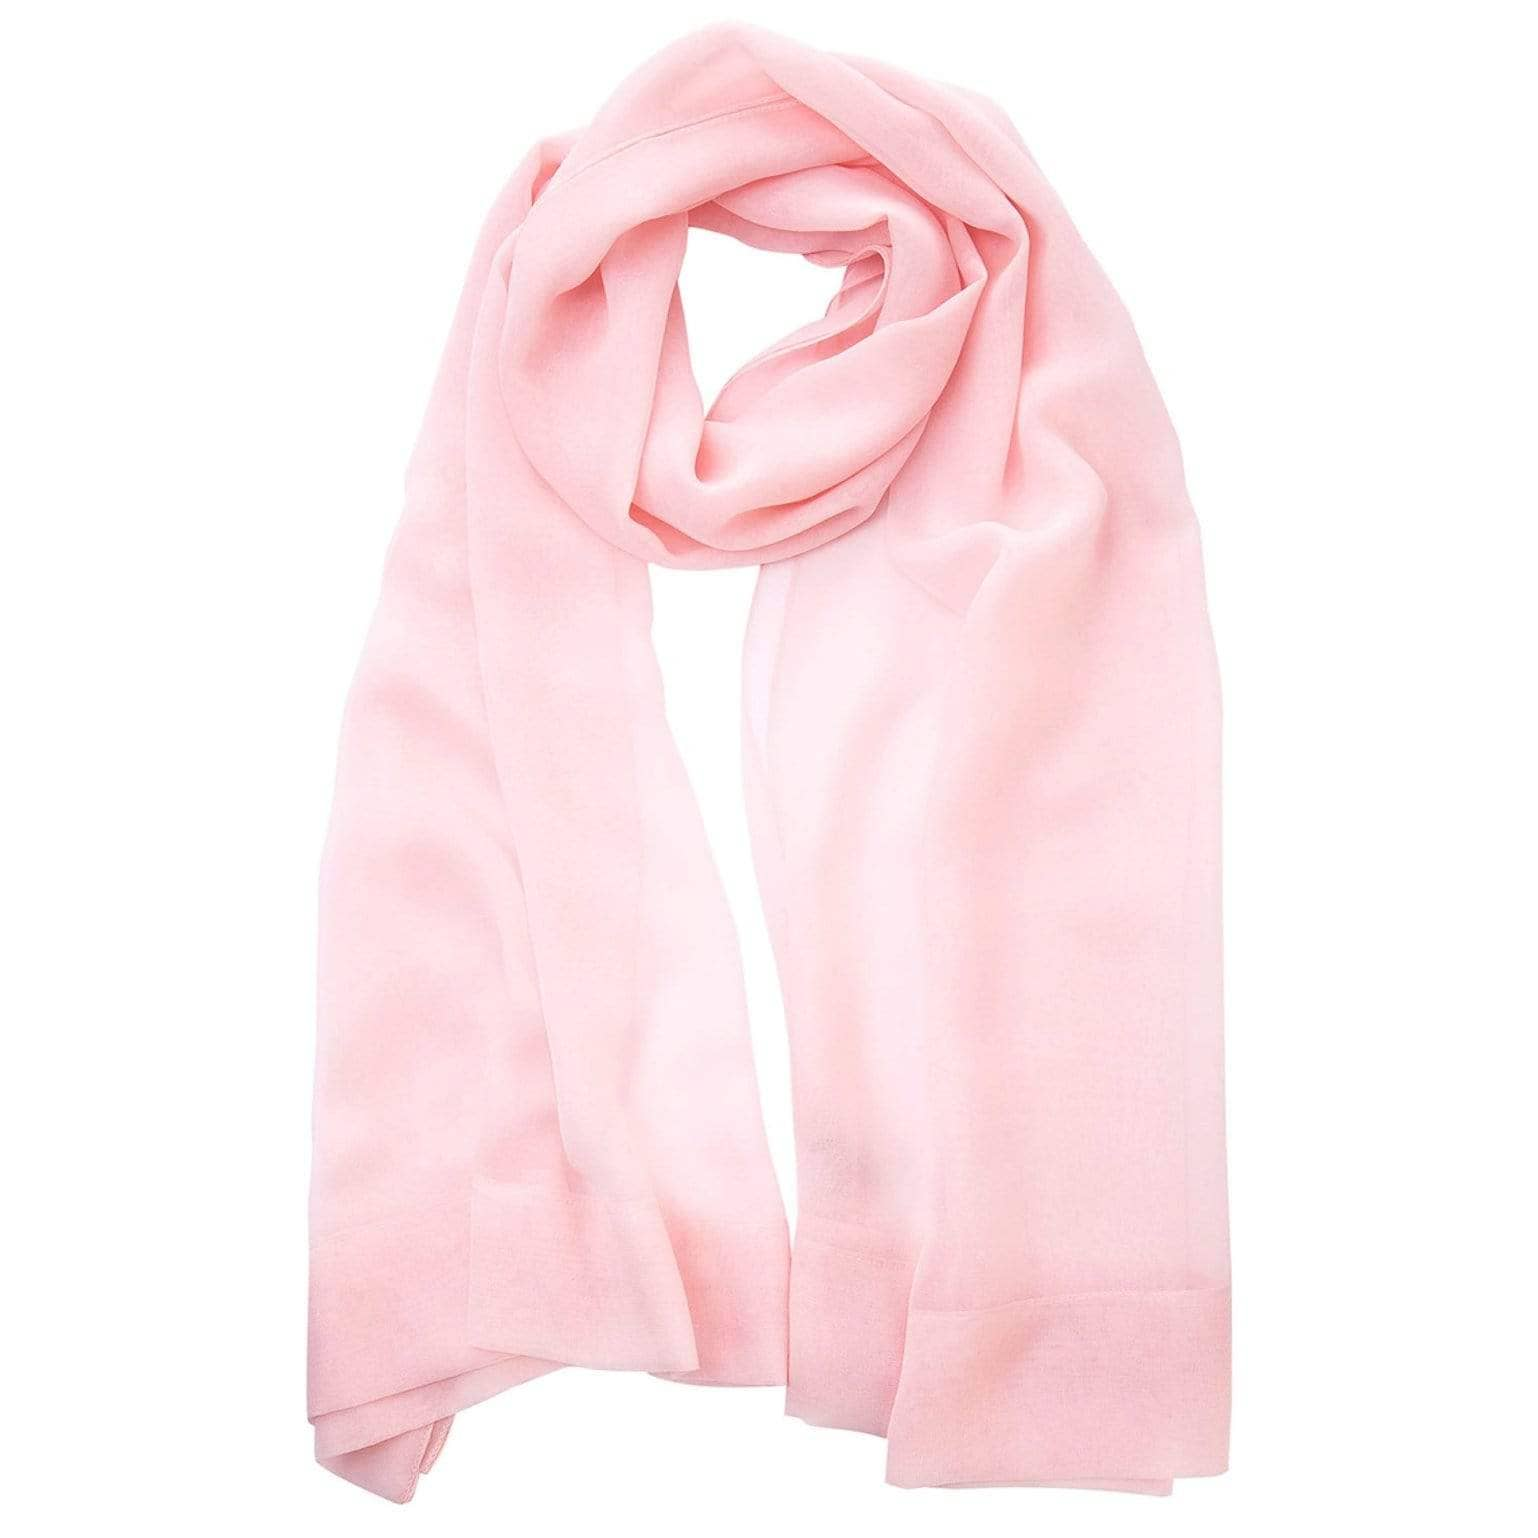 Pink Chiffon Shawl - Sheer Italian Silk Evening Wrap